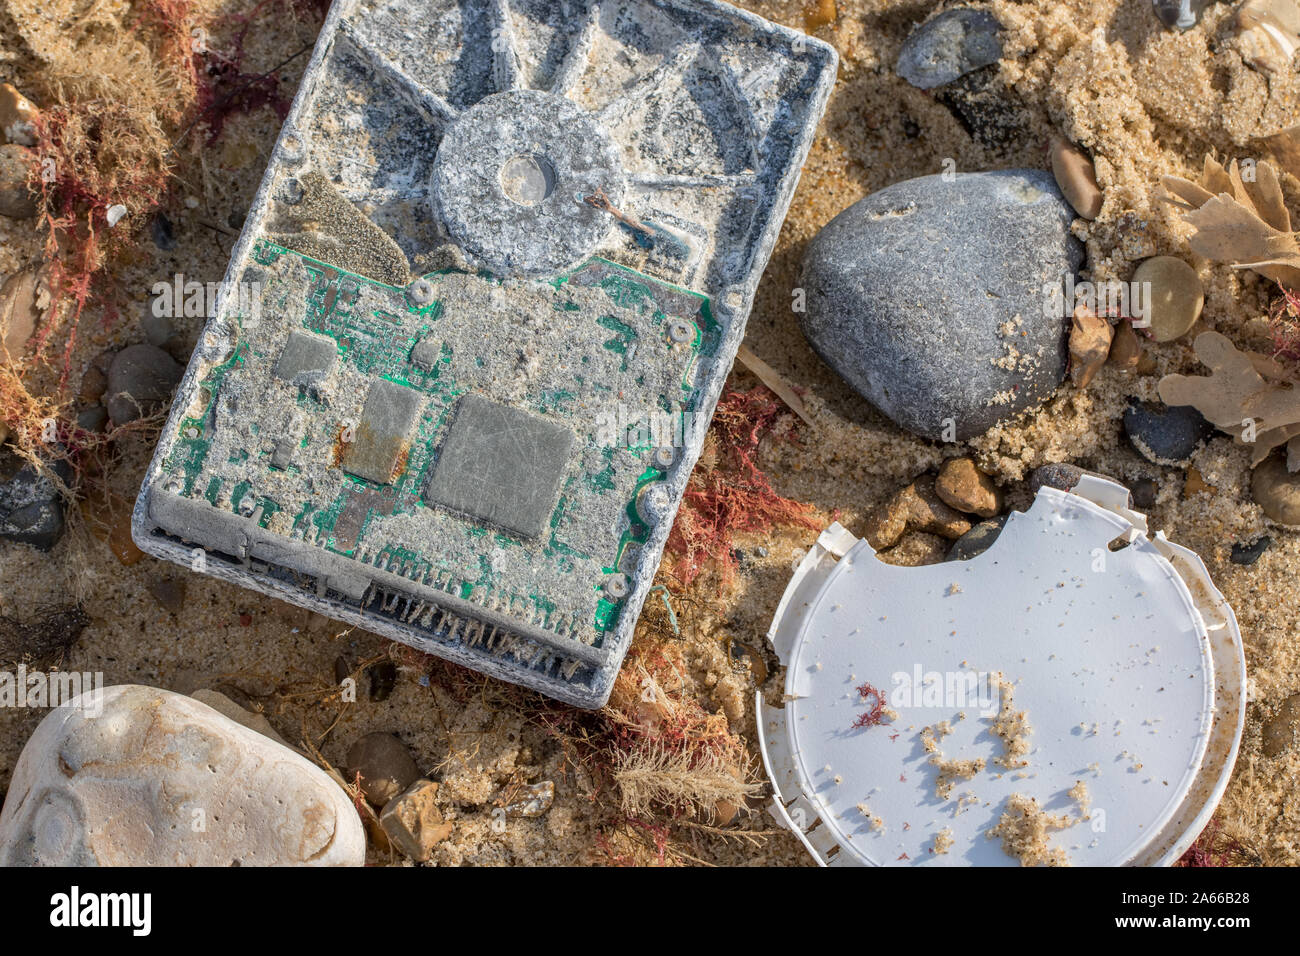 Computer pollution. Washed-up obsolete technology causing waste management problem. Marine toxic hazard and land-fill disaster as changing tech has en Stock Photo